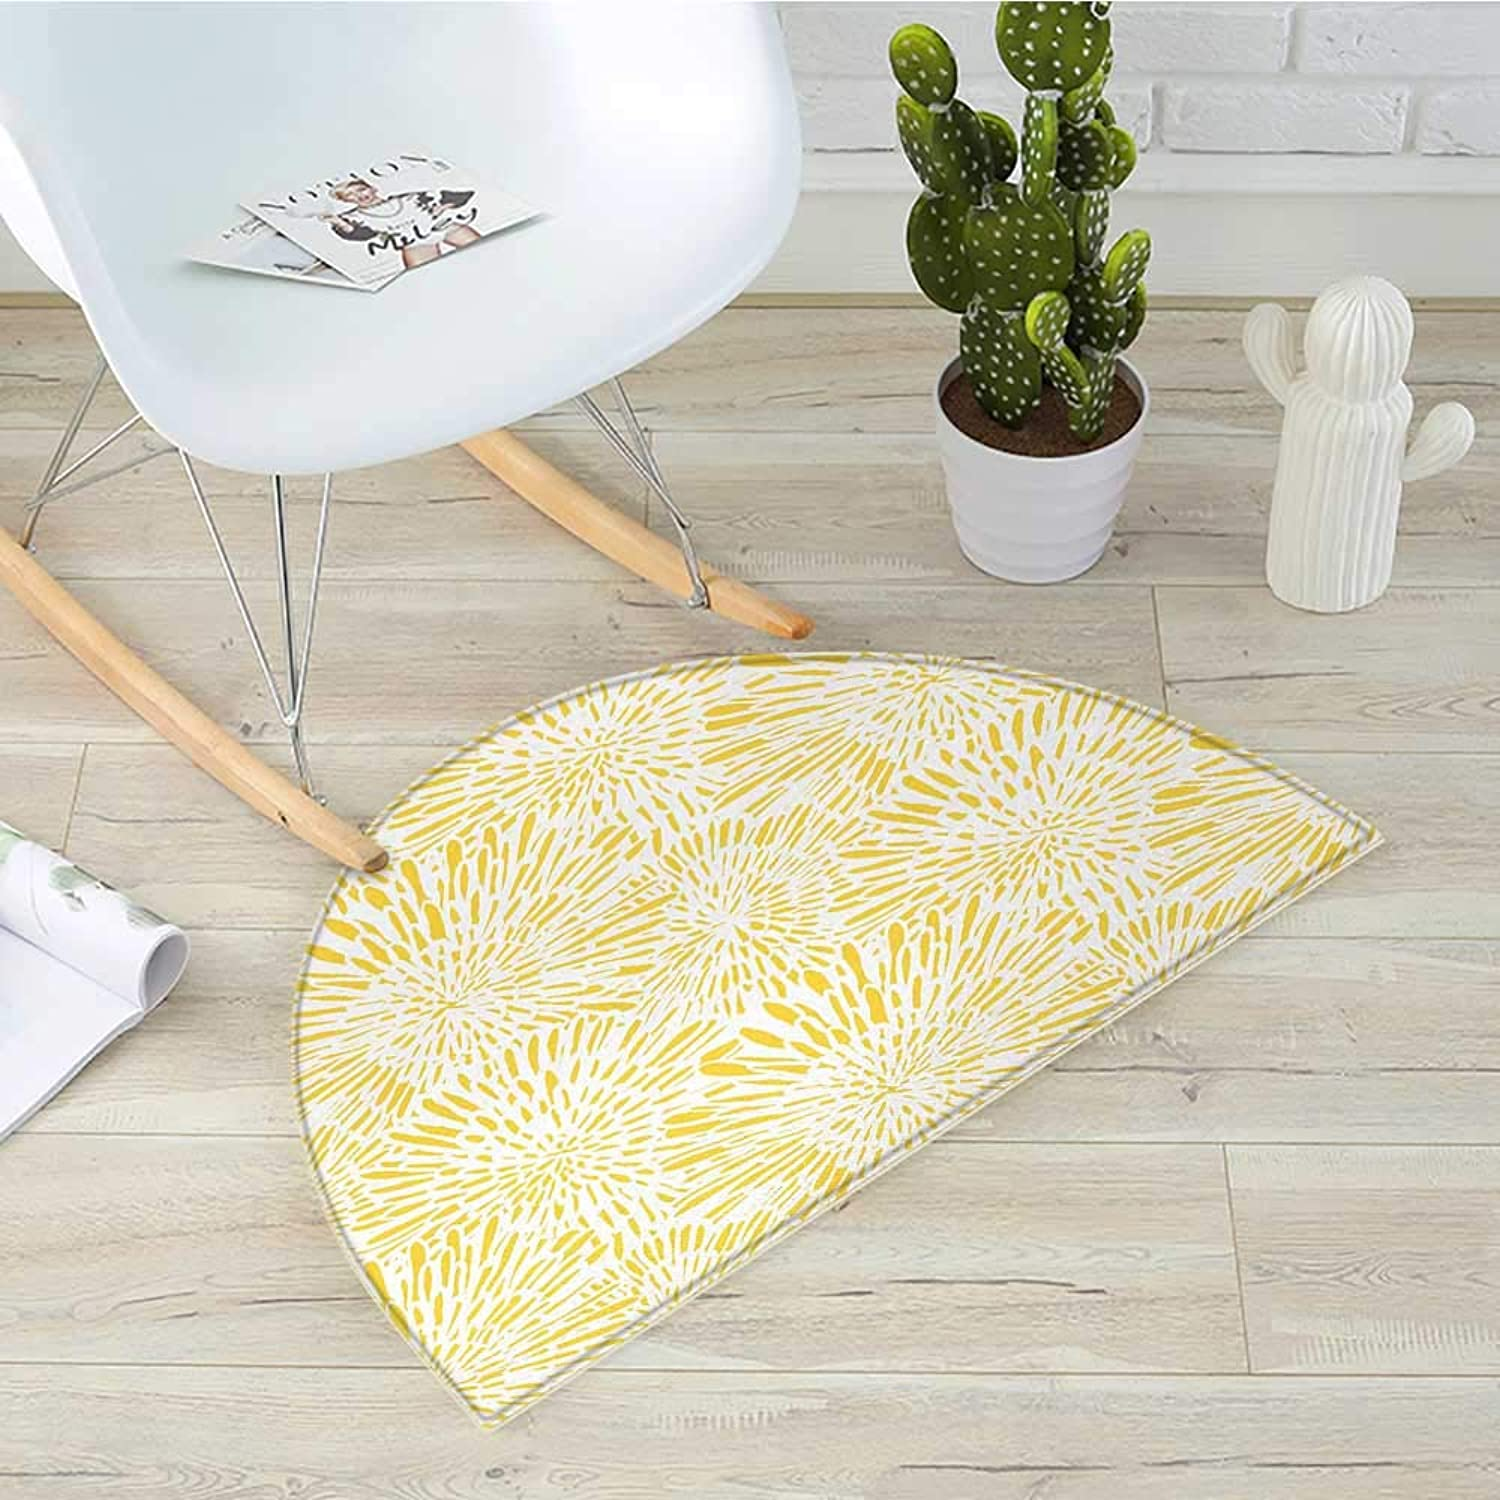 Yellow Semicircle Doormat Hand Drawn Vintage Floral Pattern with Dandelions Asters Abstract Blossoms Nature Halfmoon doormats H 31.5  xD 47.2  Yellow White